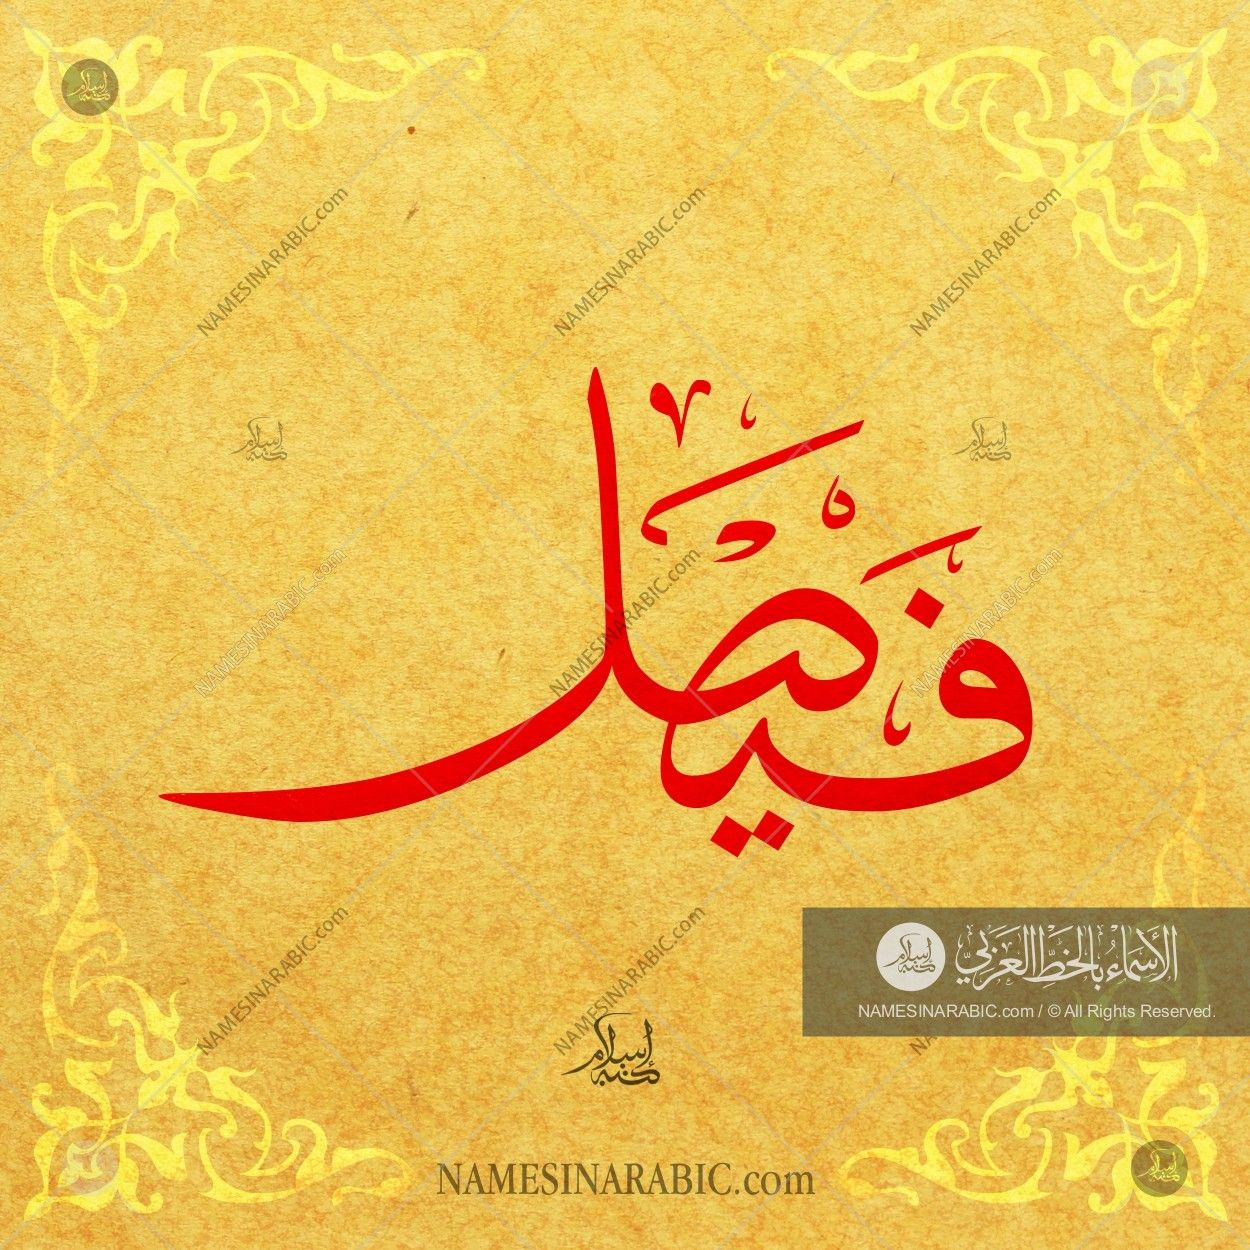 Faisal فيصل Names In Arabic Calligraphy Name 7600 Alphabet Letters Design Calligraphy Name Lettering Alphabet